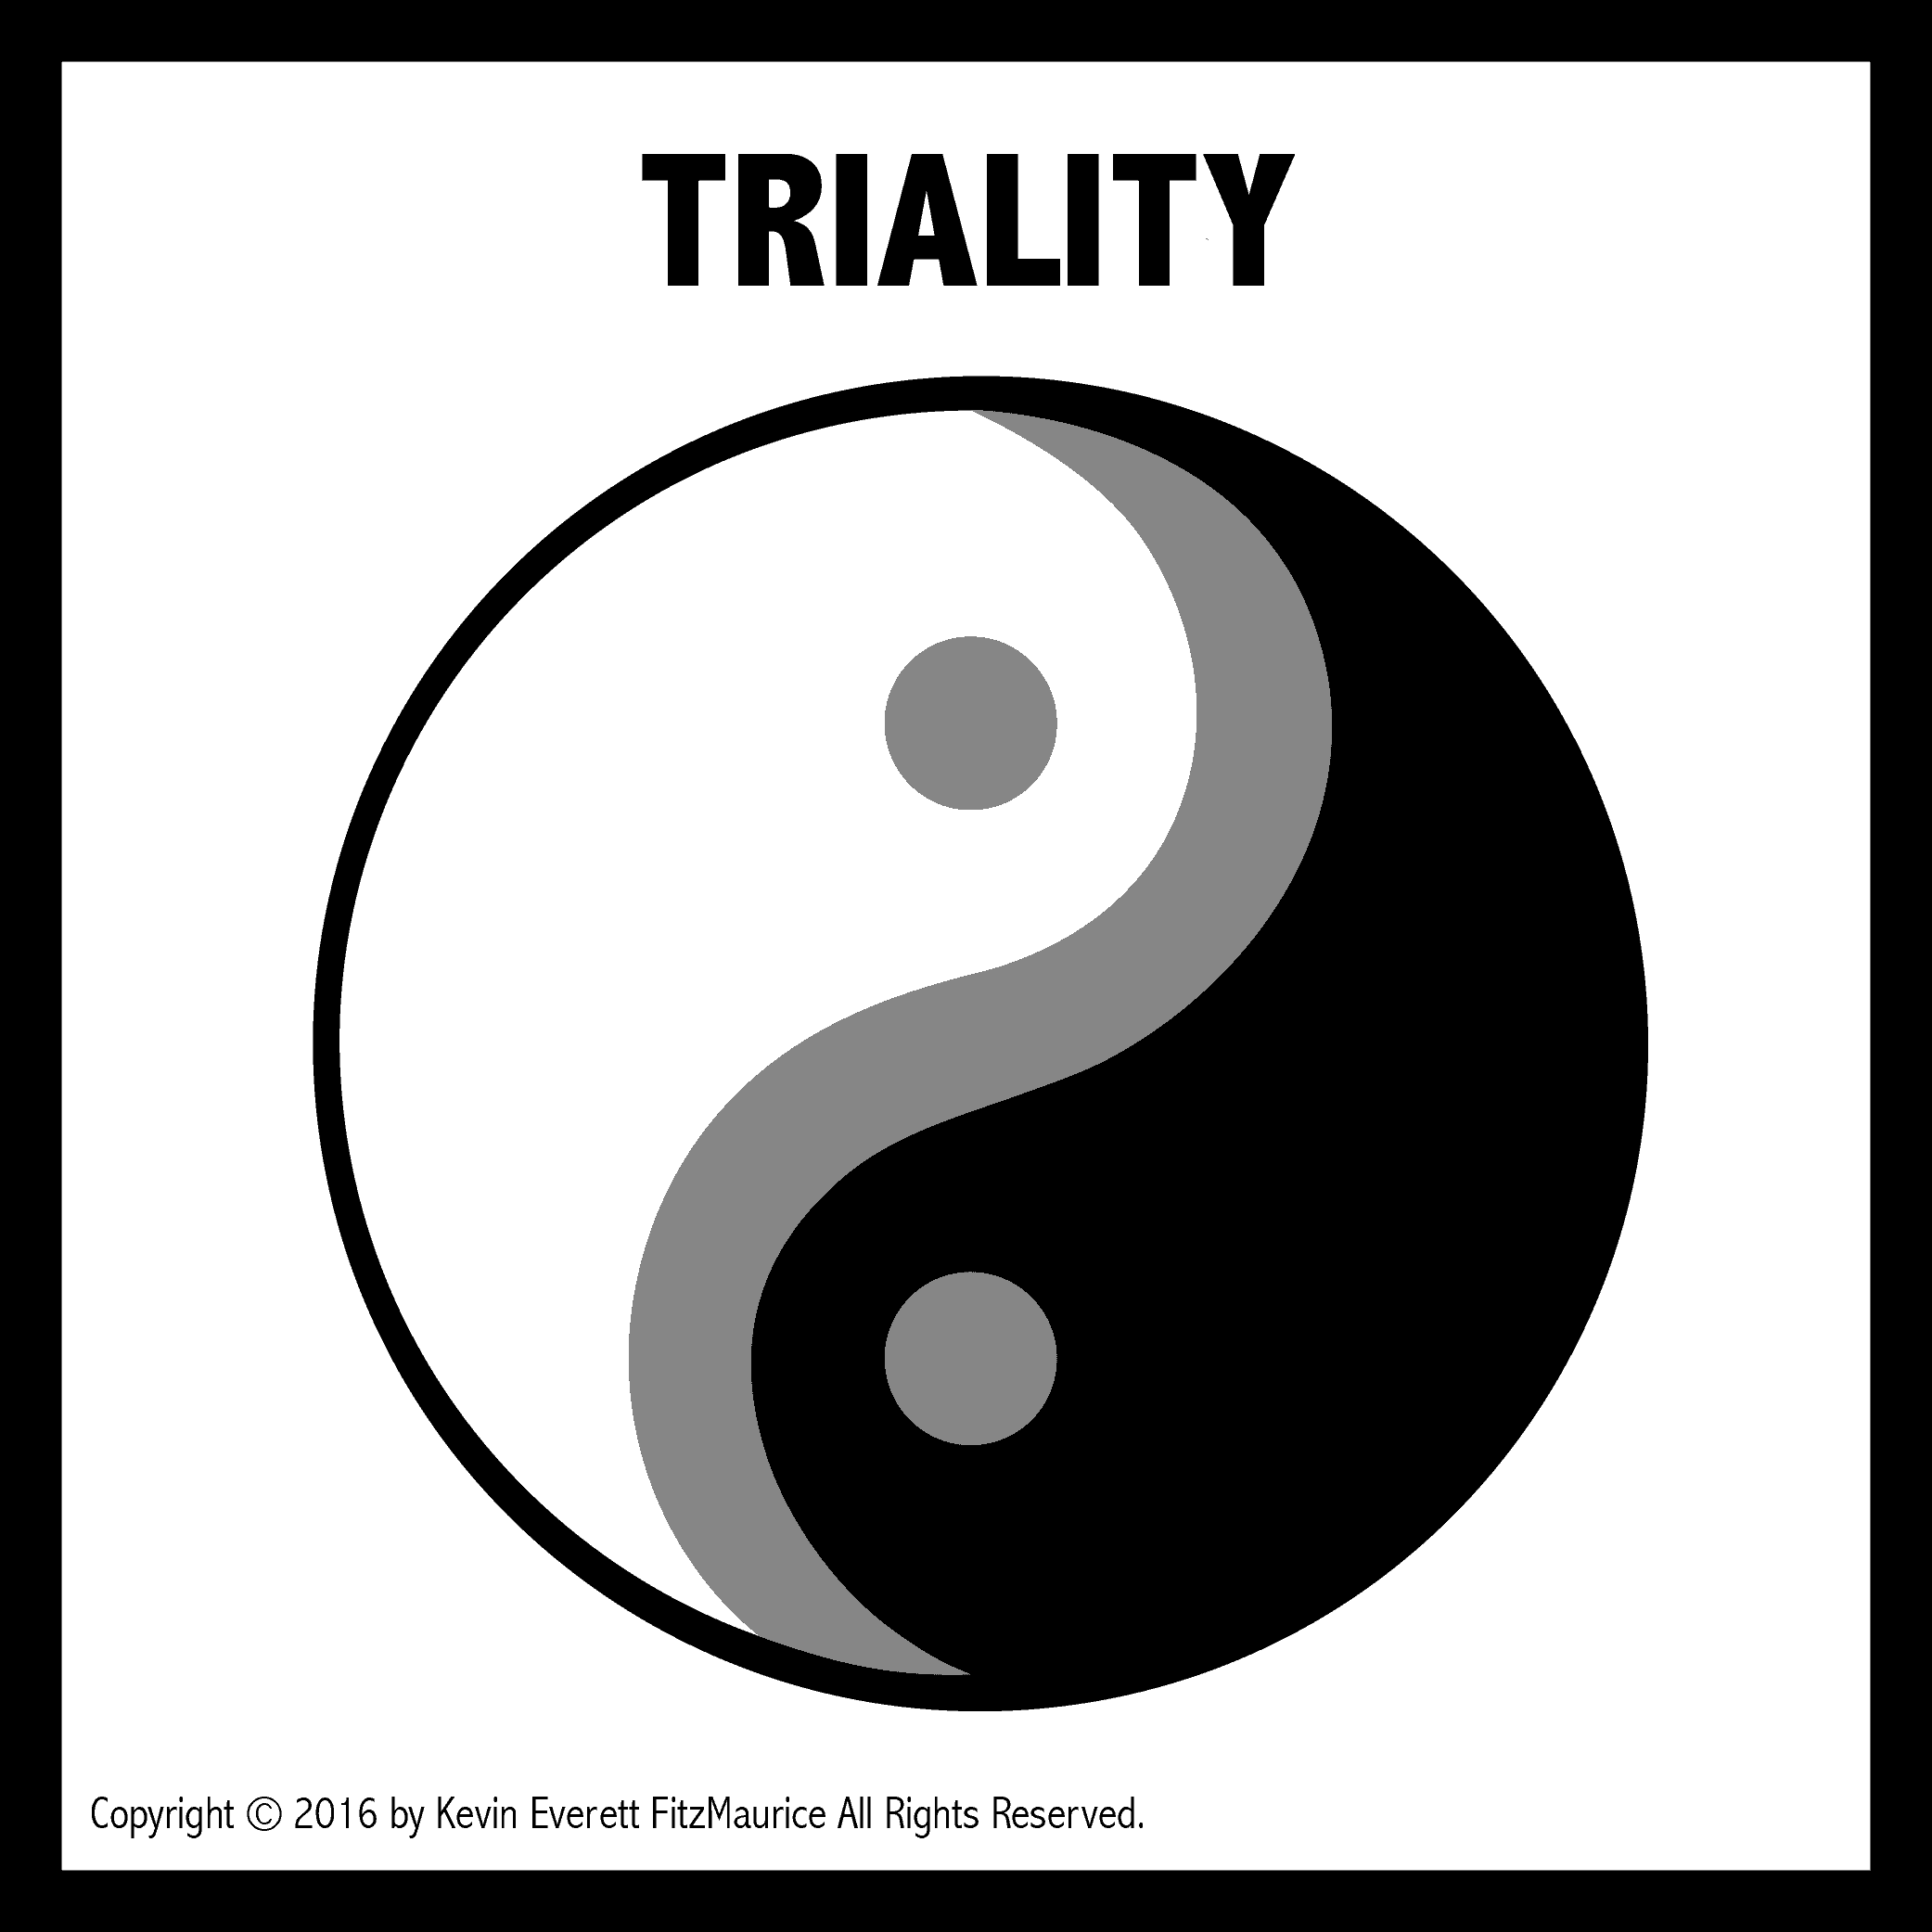 diagram of triality